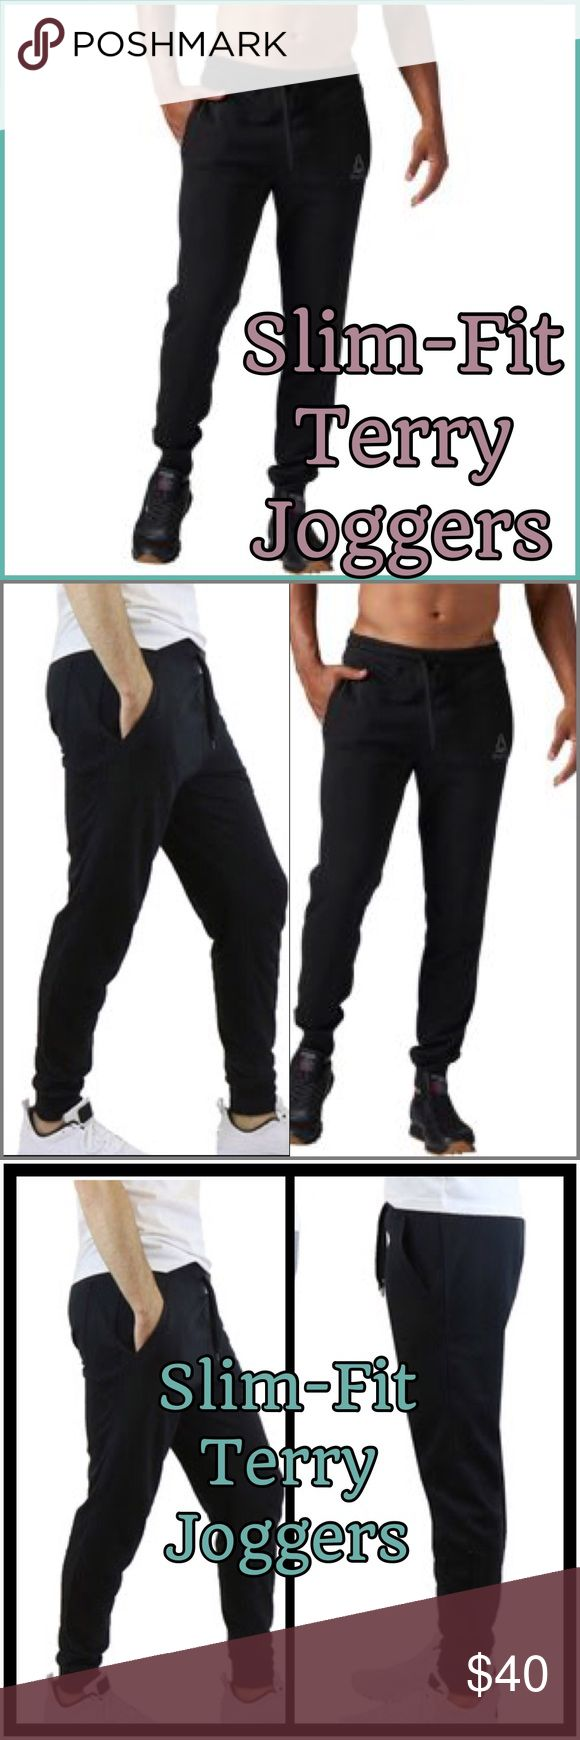 🎄Slim-fit joggers comfortable lounge & relaxing These slim-fit joggers are a comfortable outfit for jogging, lounging, or relaxing at home. Men's Slim-Fit French Terry Joggers 👍Great for lounging, the gym, and everyday wear 👍French terry knit 👍Elasticized waistband and cuffs 👍Drawstring for preferred comfort 👍2 side functional pockets 👍Materials: 60% cotton, 40% polyester 👍Machine wash cold.                                               💥💥Top seller, super fast shipping, Posh…